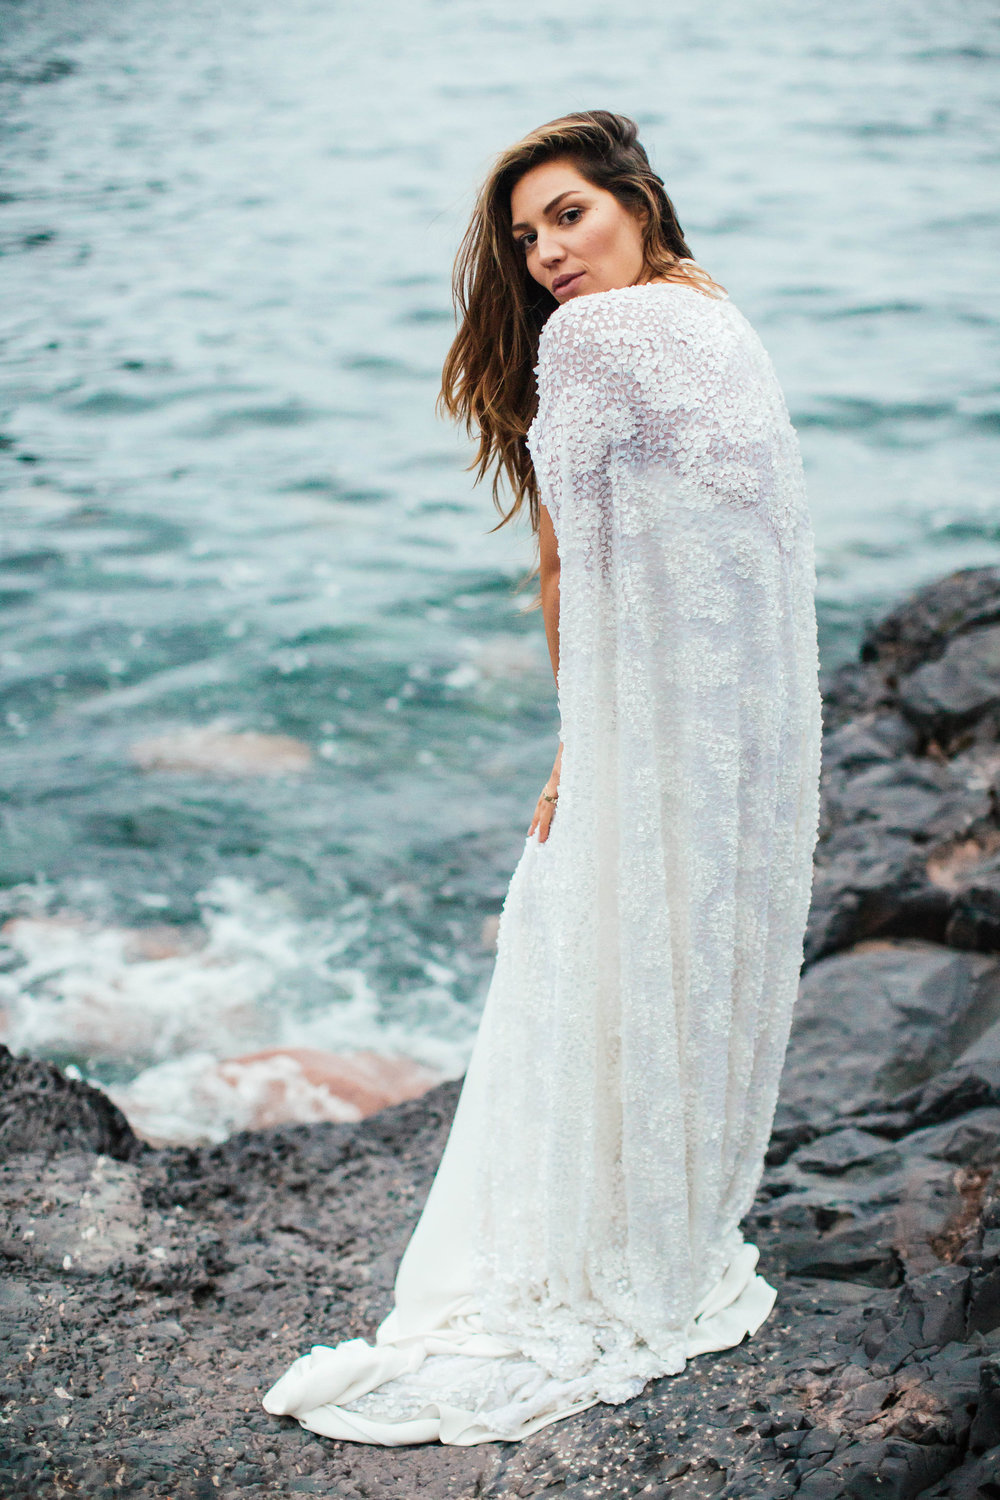 NorthShoreStyledShoot(125of142).jpg